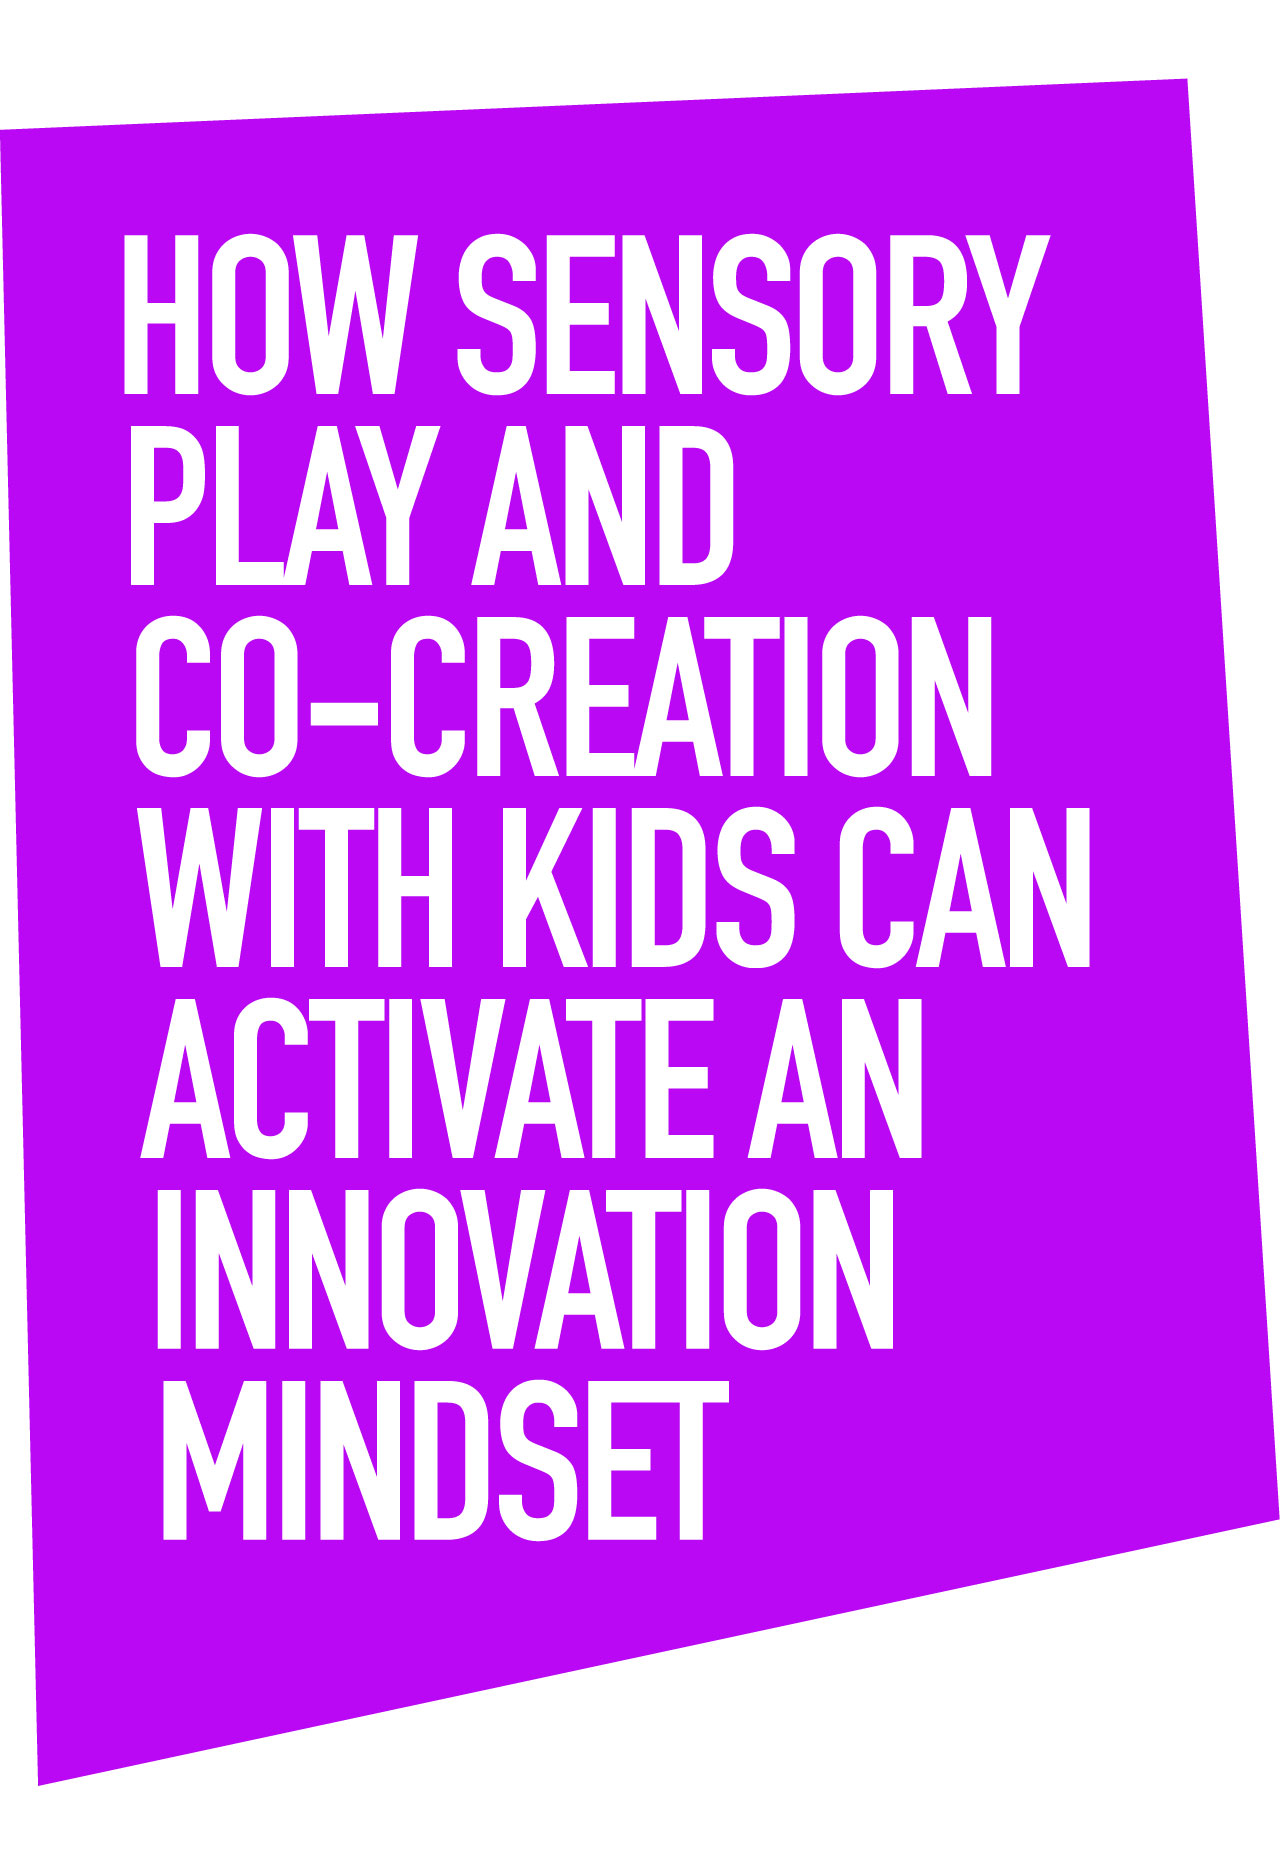 How Sensory Play and Co-Creation With Kids Can Activate an Innovation Mindset